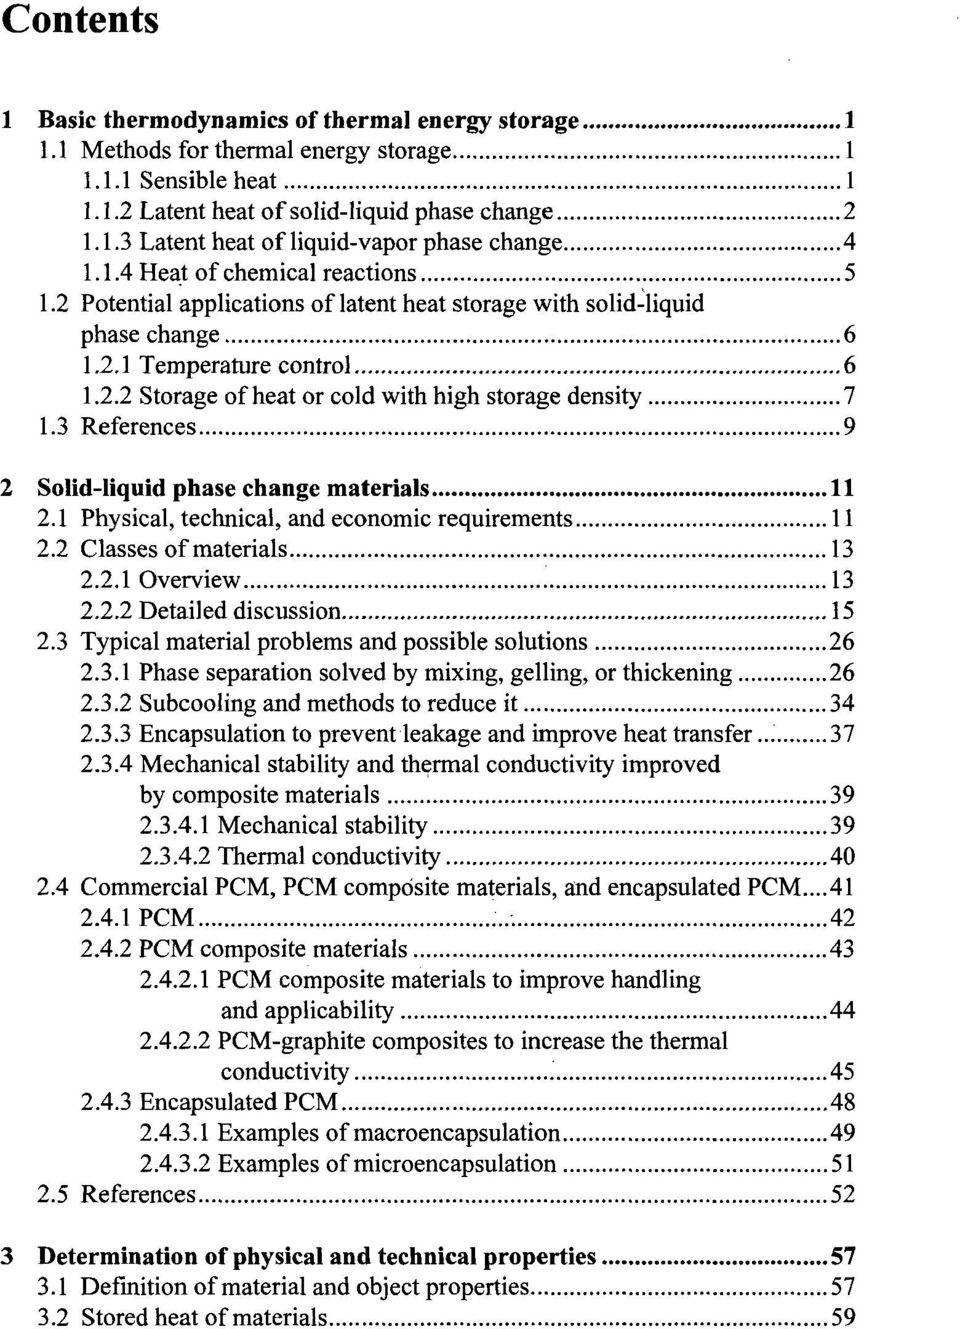 3 References 9 2 Solid-liquid phase change materials 11 2.1 Physical, technical, and economic requirements 11 2.2 Classes of materials 13 2.2.1 Overview 13 2.2.2 Detailed discussion 15 2.